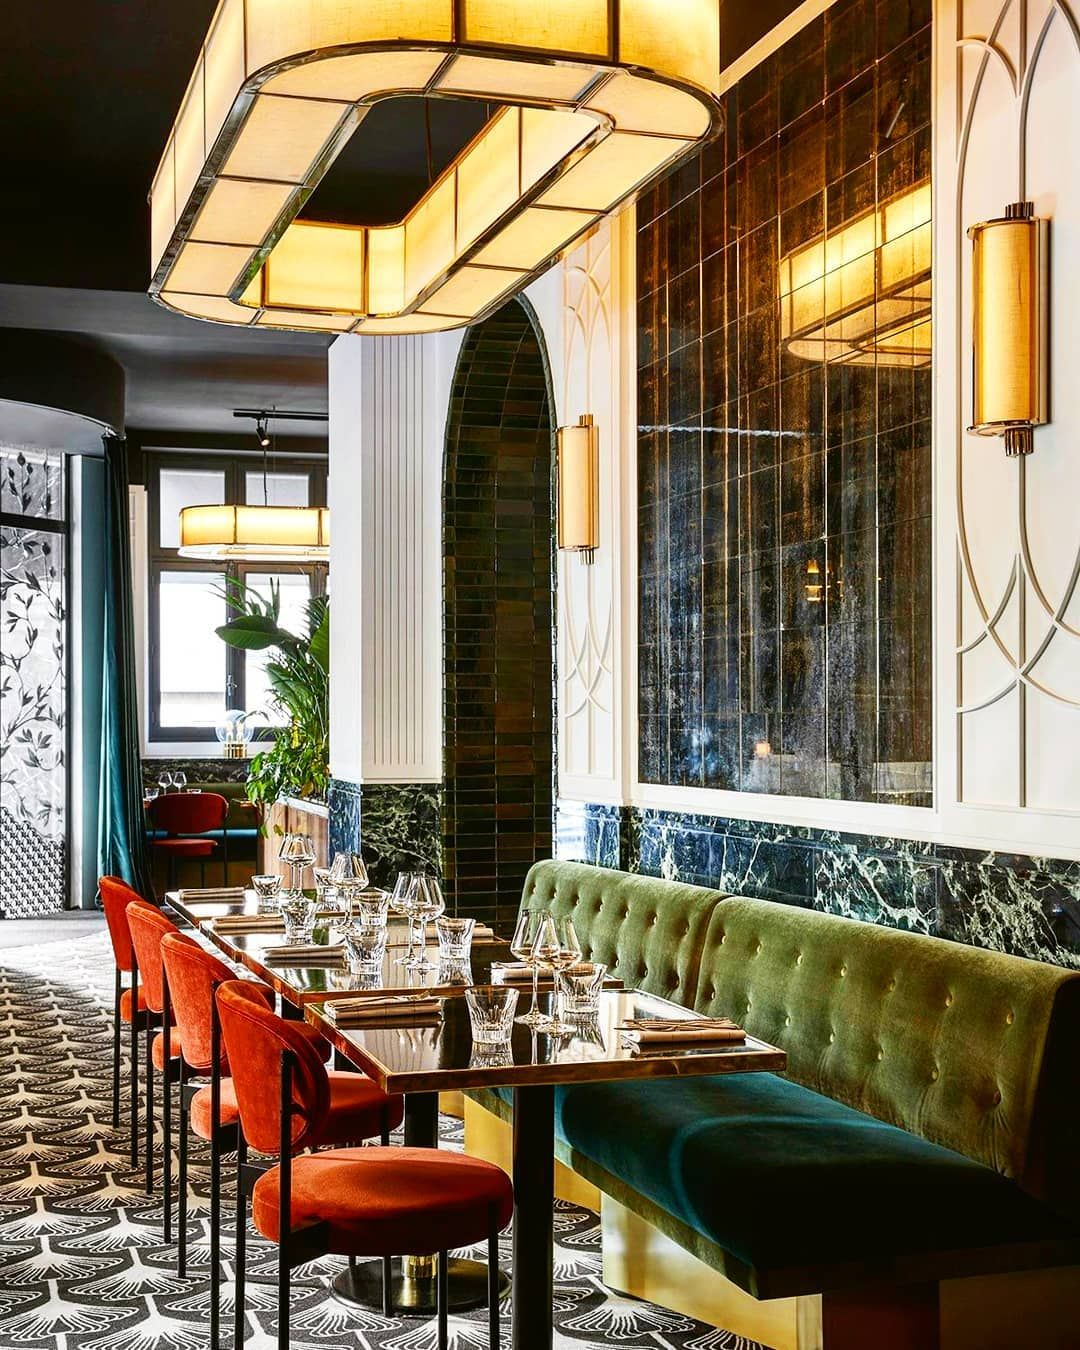 Beefbar Paris, design project by Humbert and poyet # ...